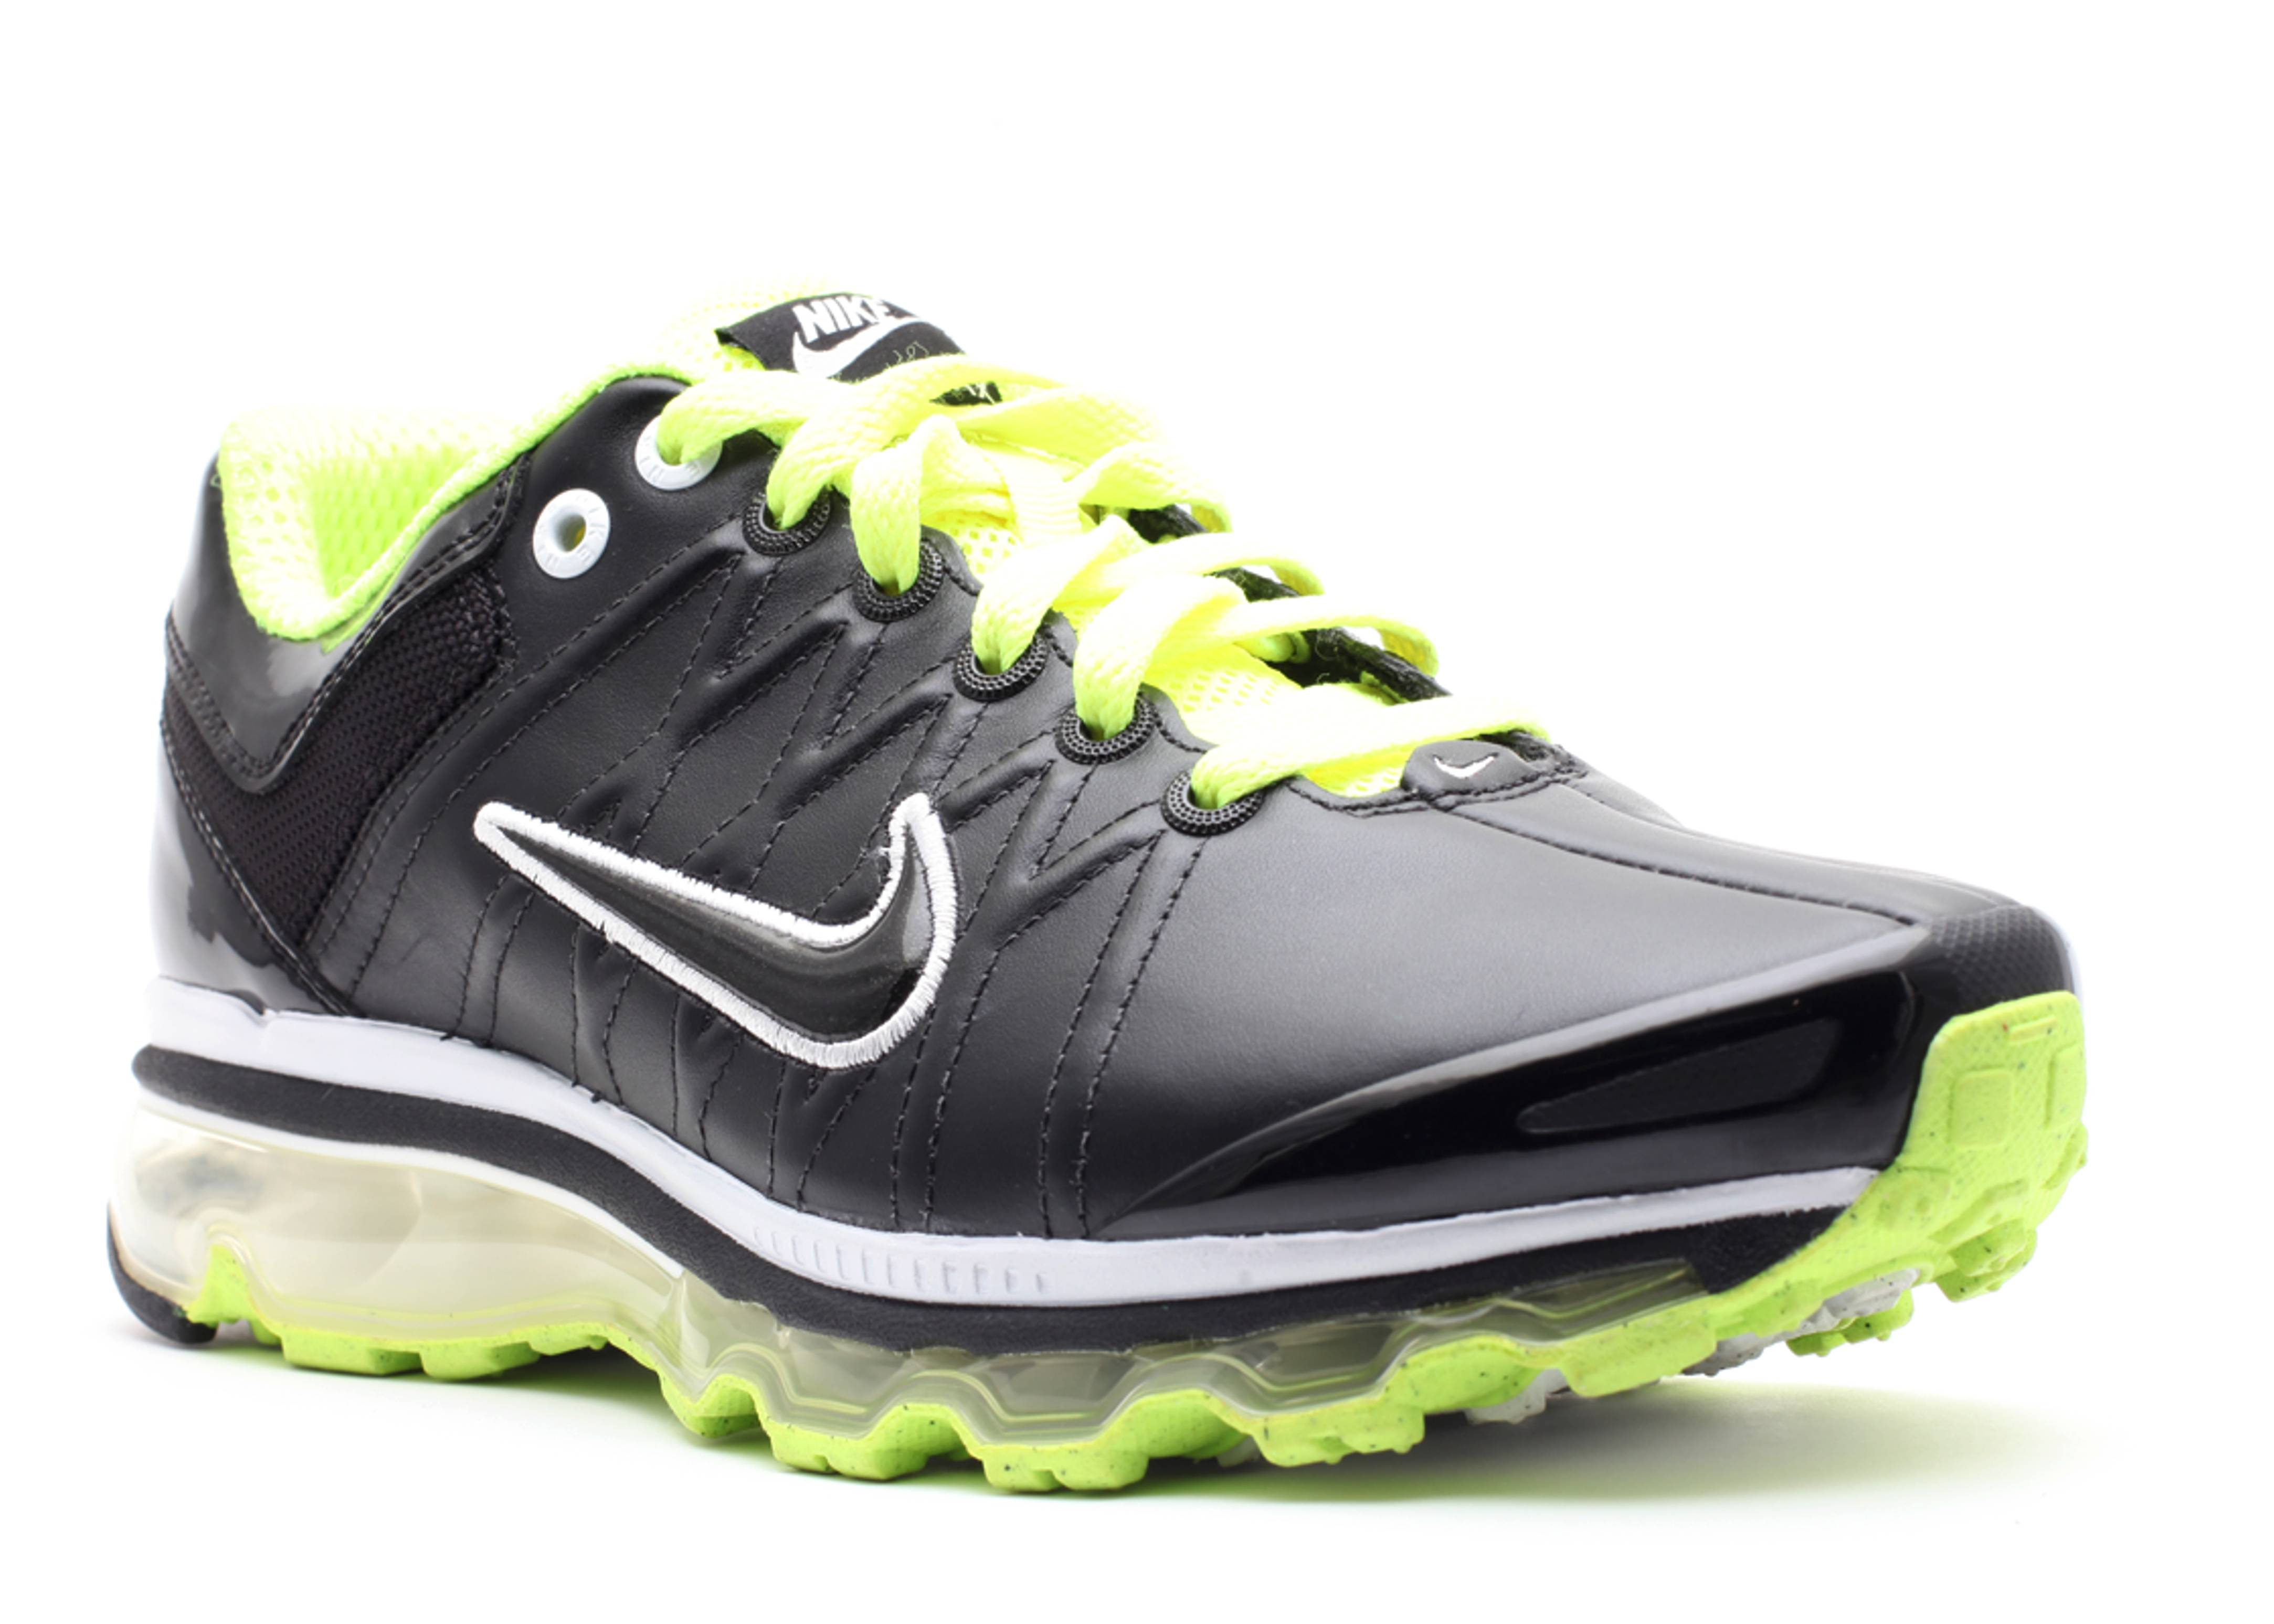 2009 Air Max Leather Black | Indian Television Dot Com